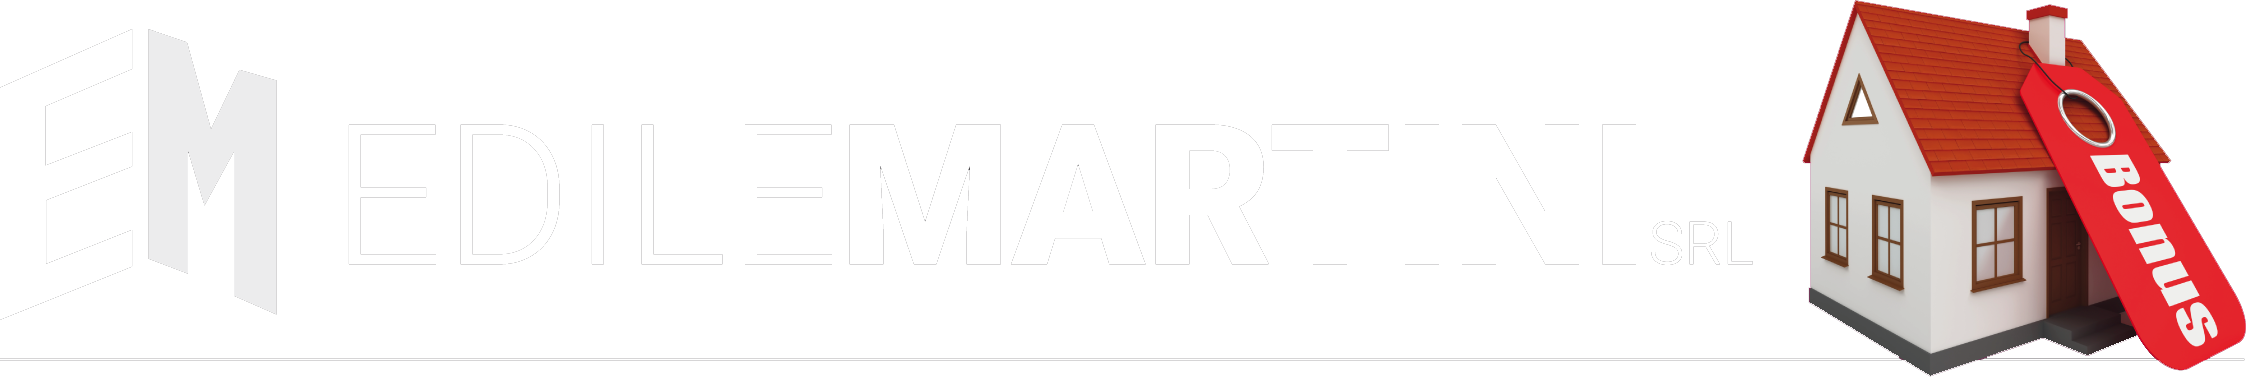 logo edile martini light